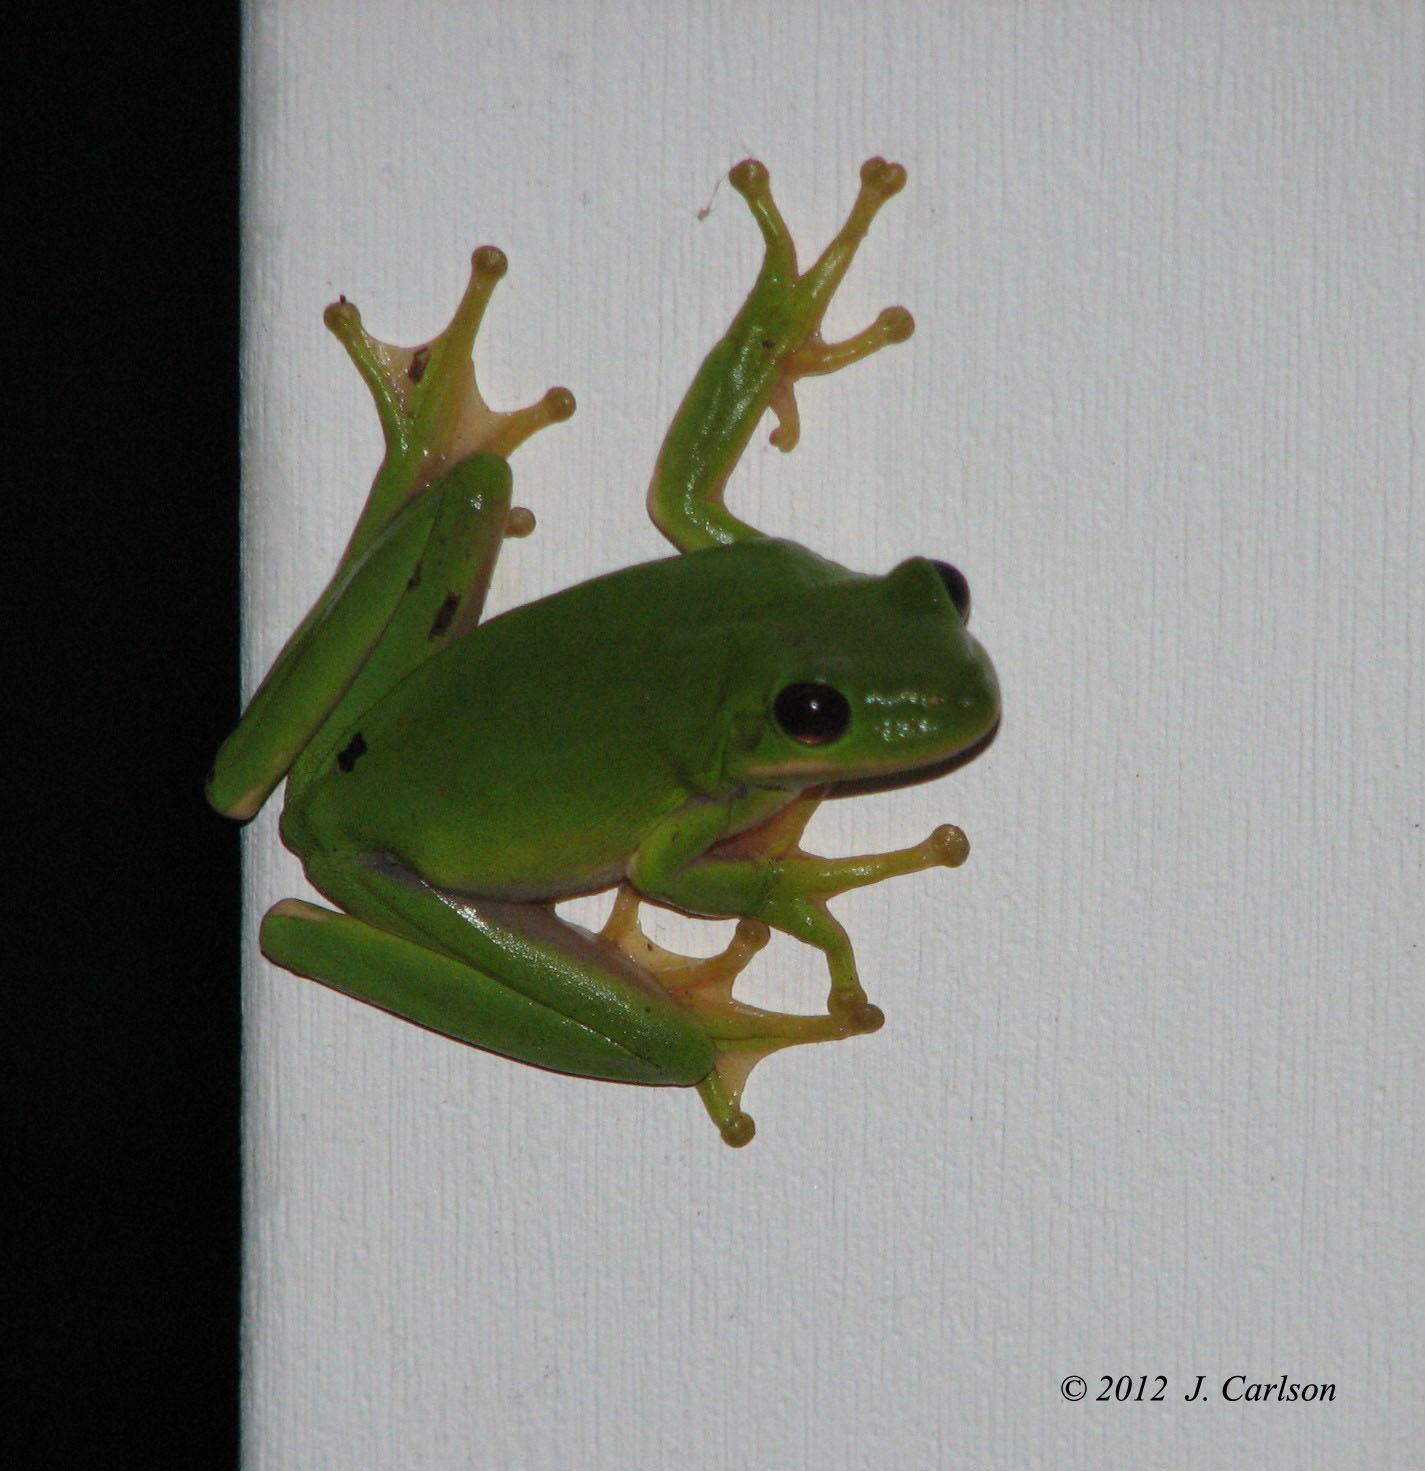 Nature-in-verse: American Green Tree Frog